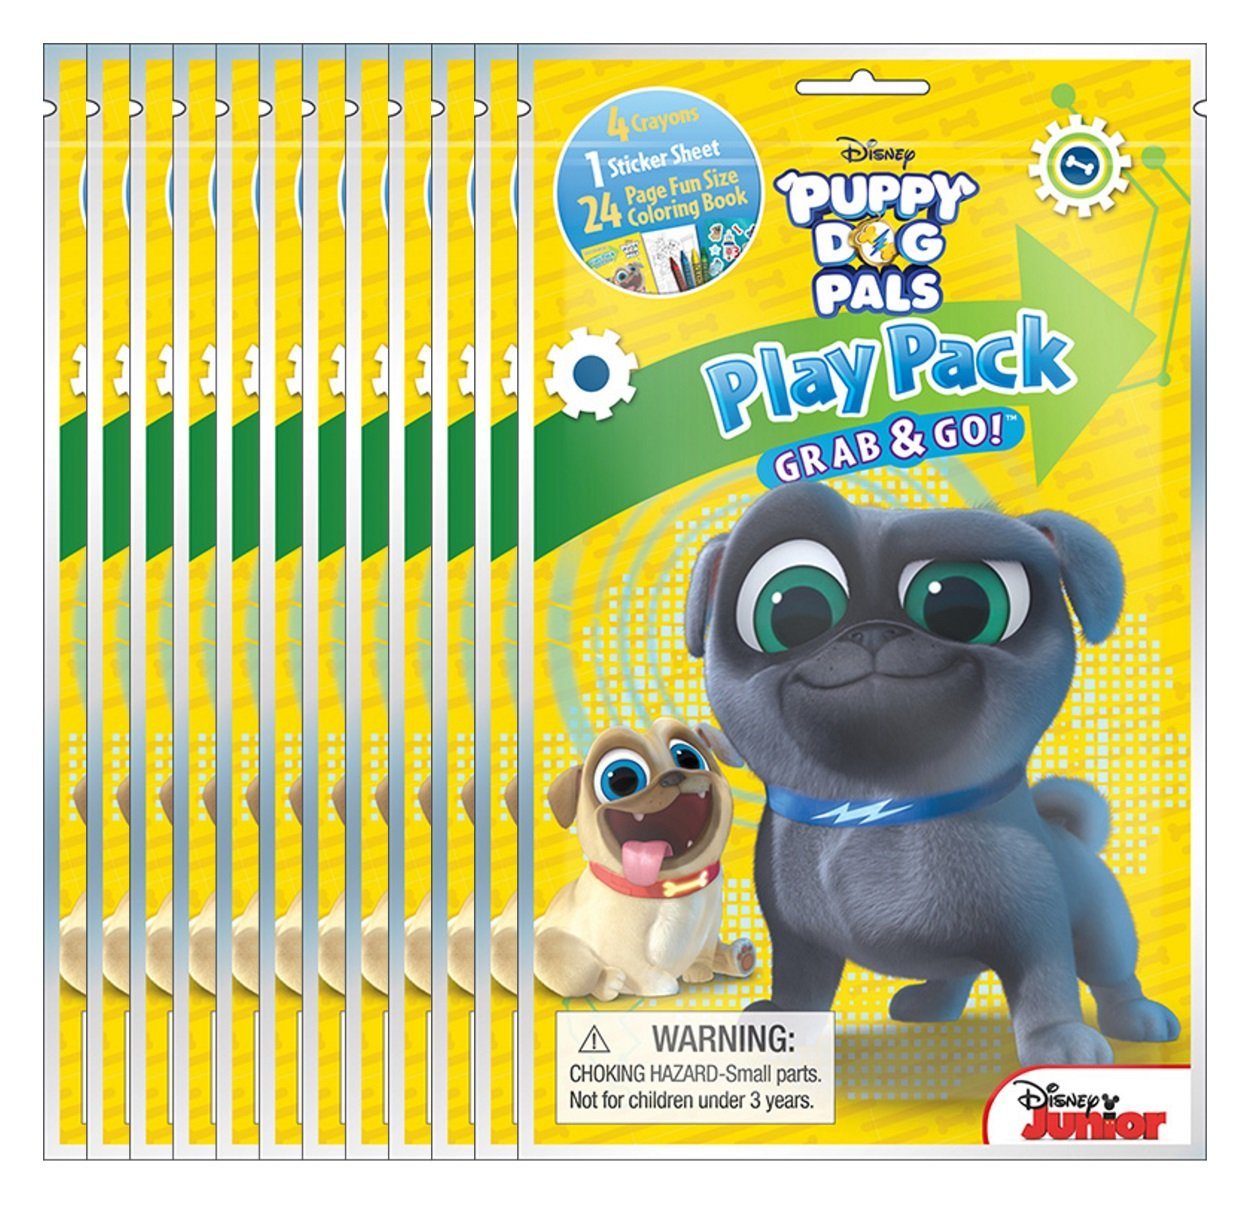 Bendon Disney Puppy Dog Pals Grab /& Go Play Packs Pack of 12